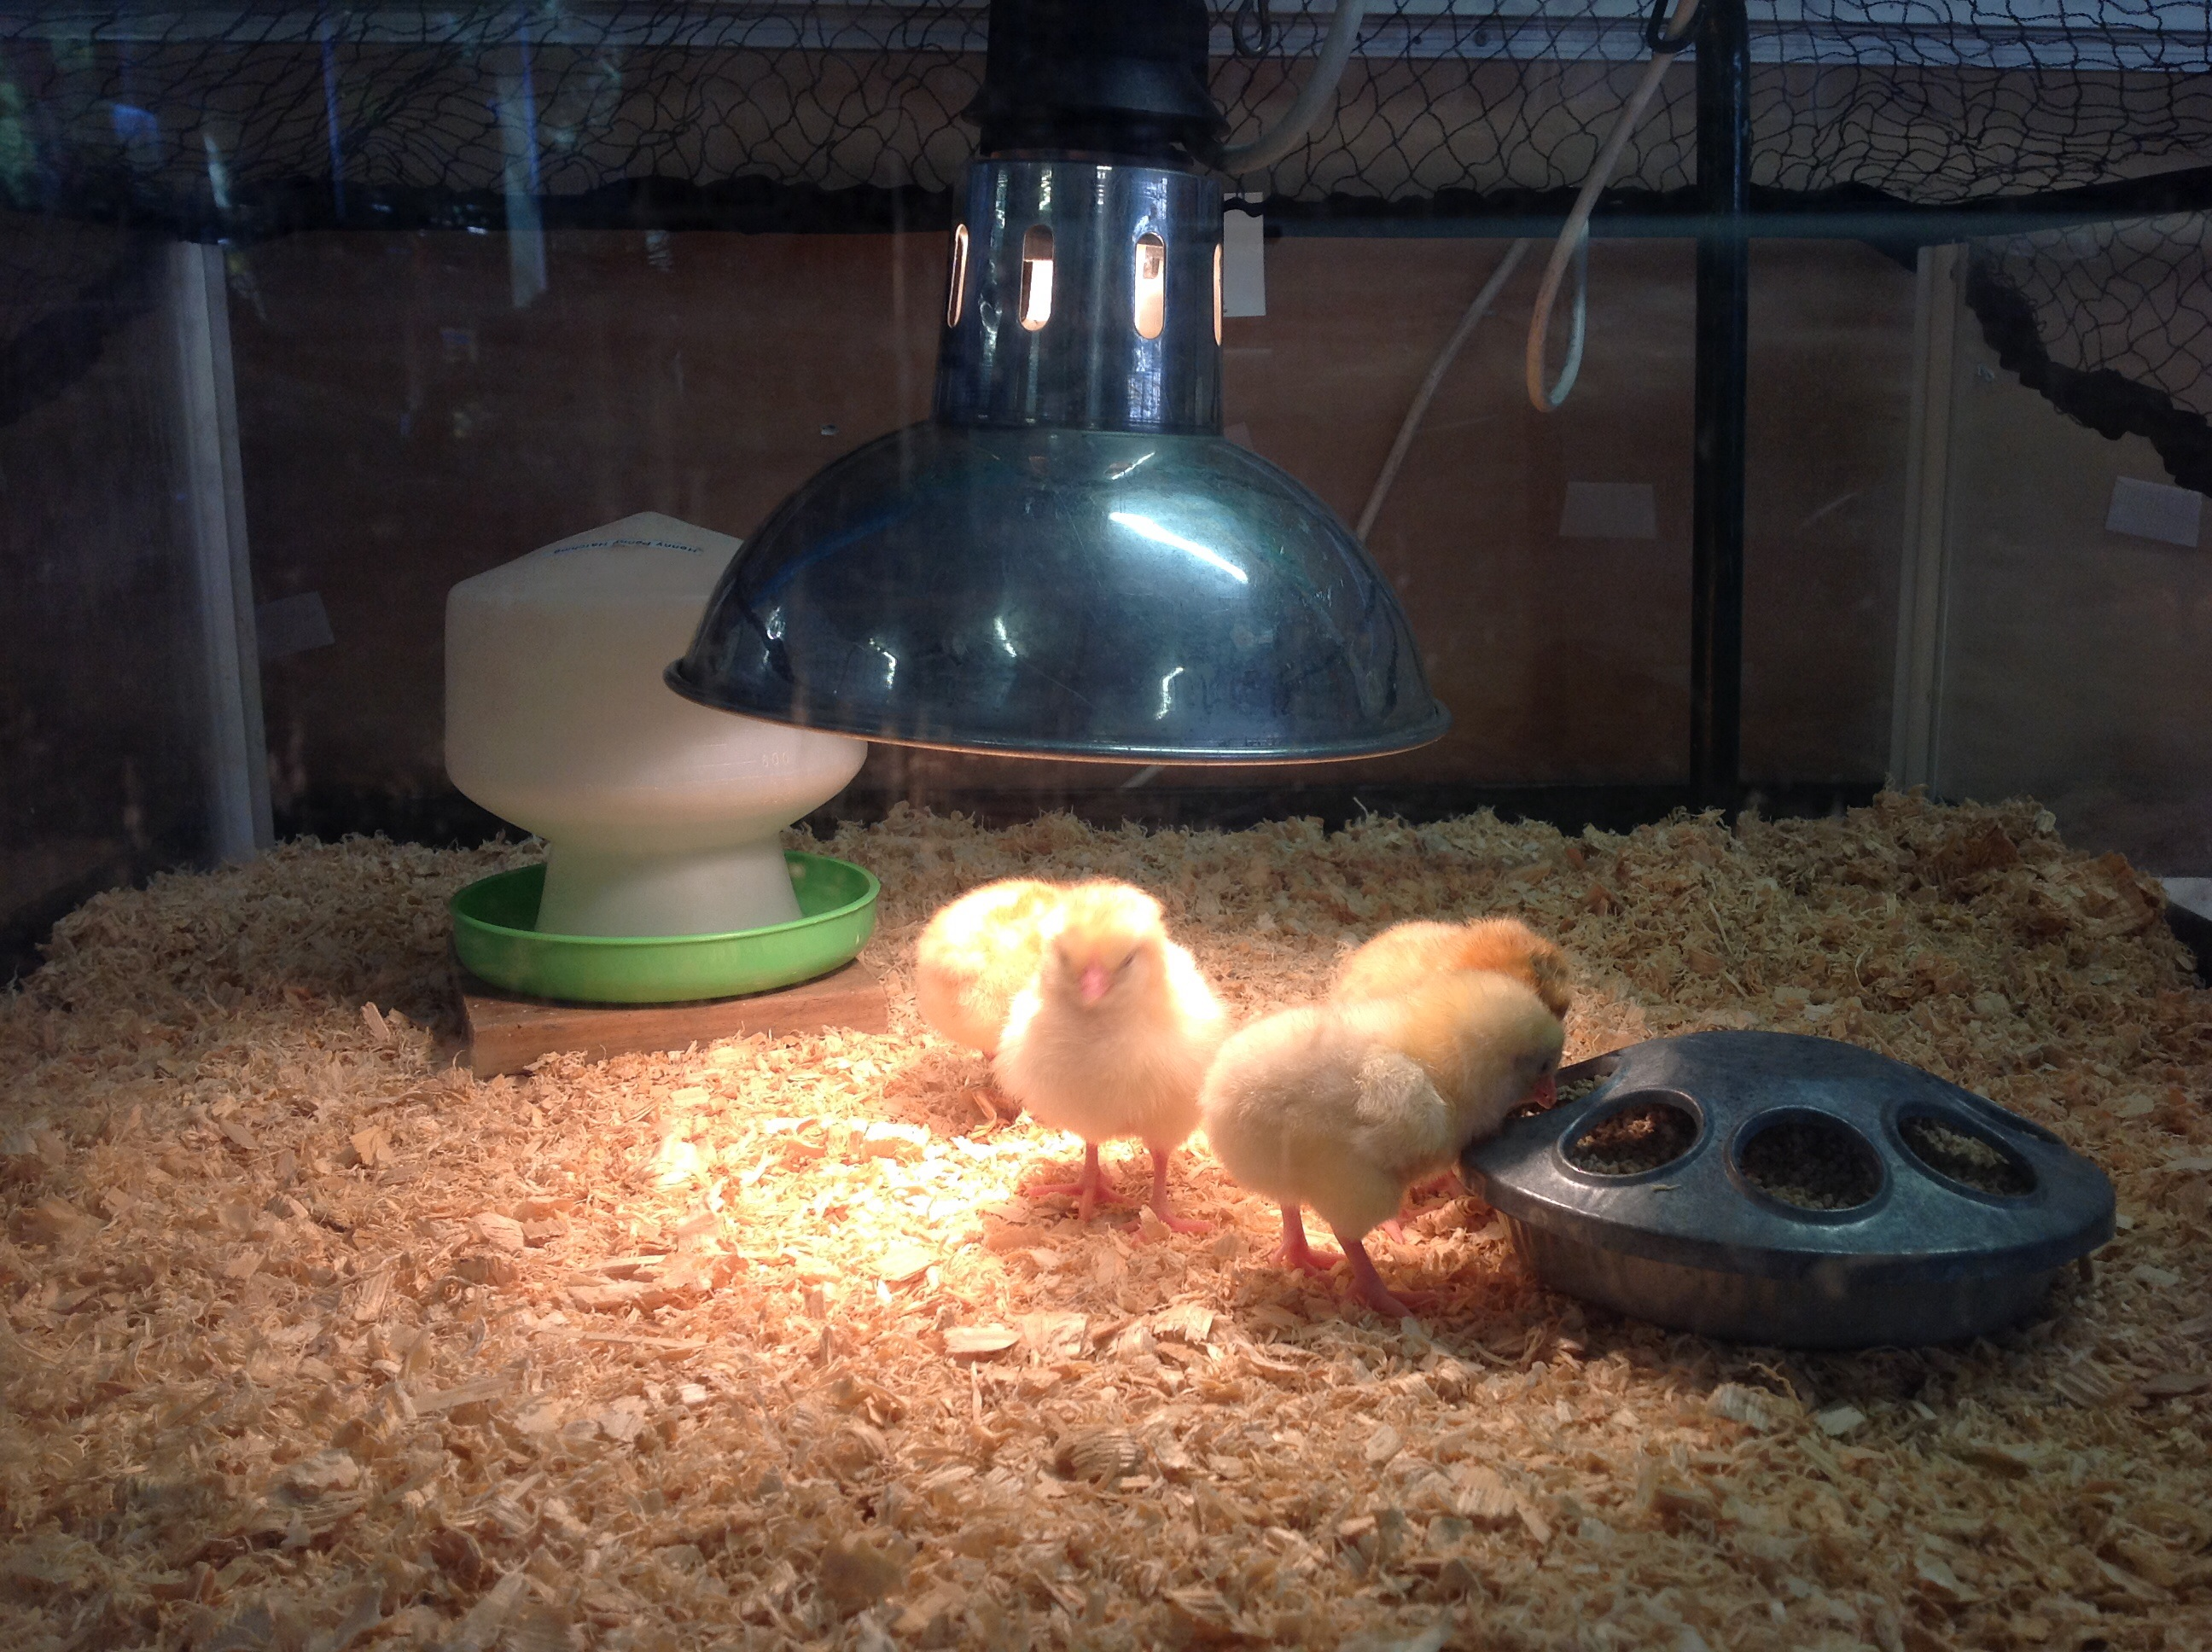 Hello chicks!